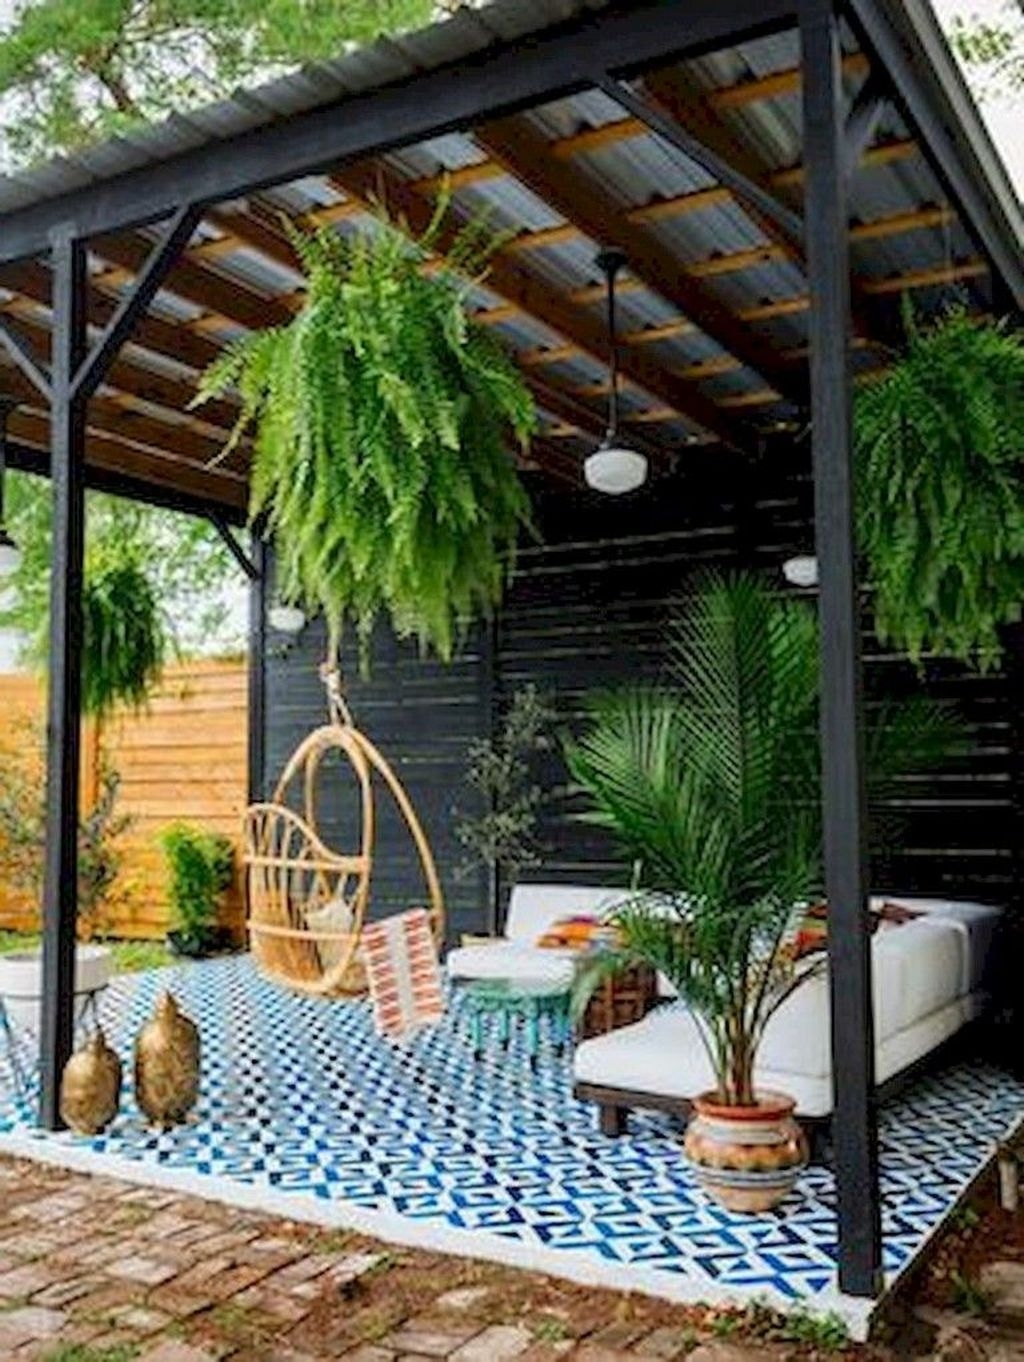 42 Brilliant Small Backyard Design Ideas On A Budget ...